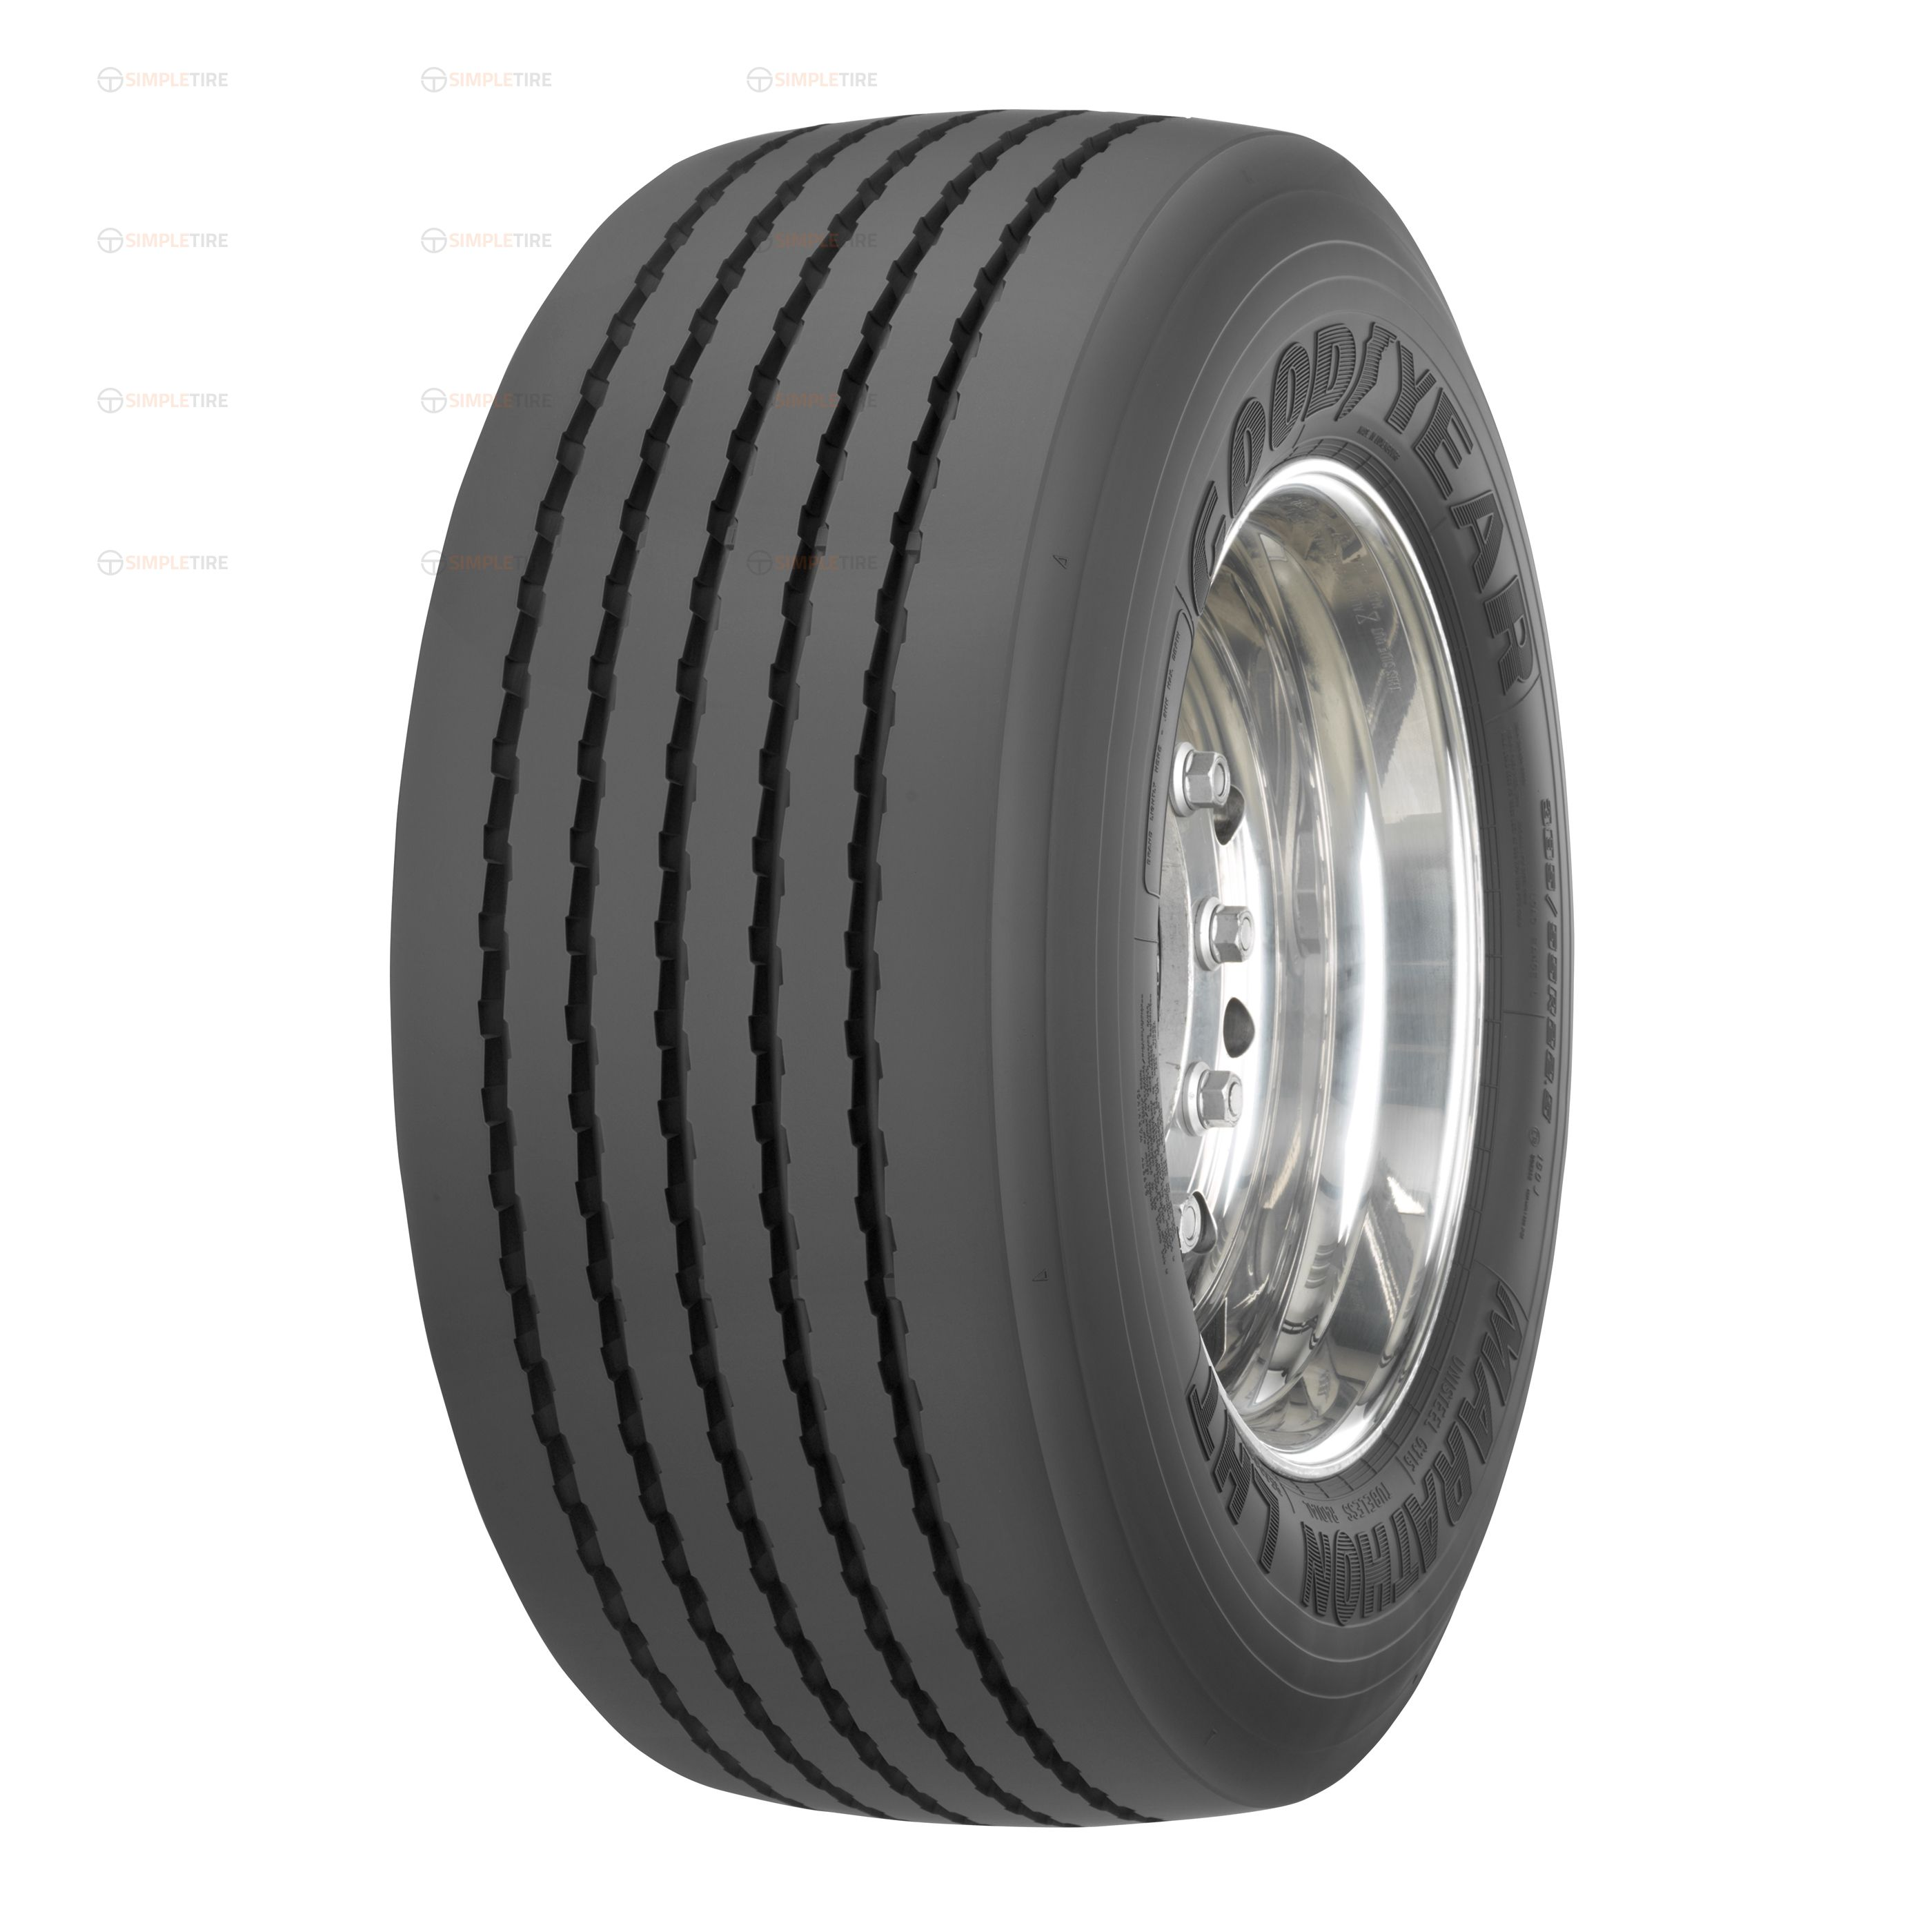 goodyear g296 msa tires buy goodyear g296